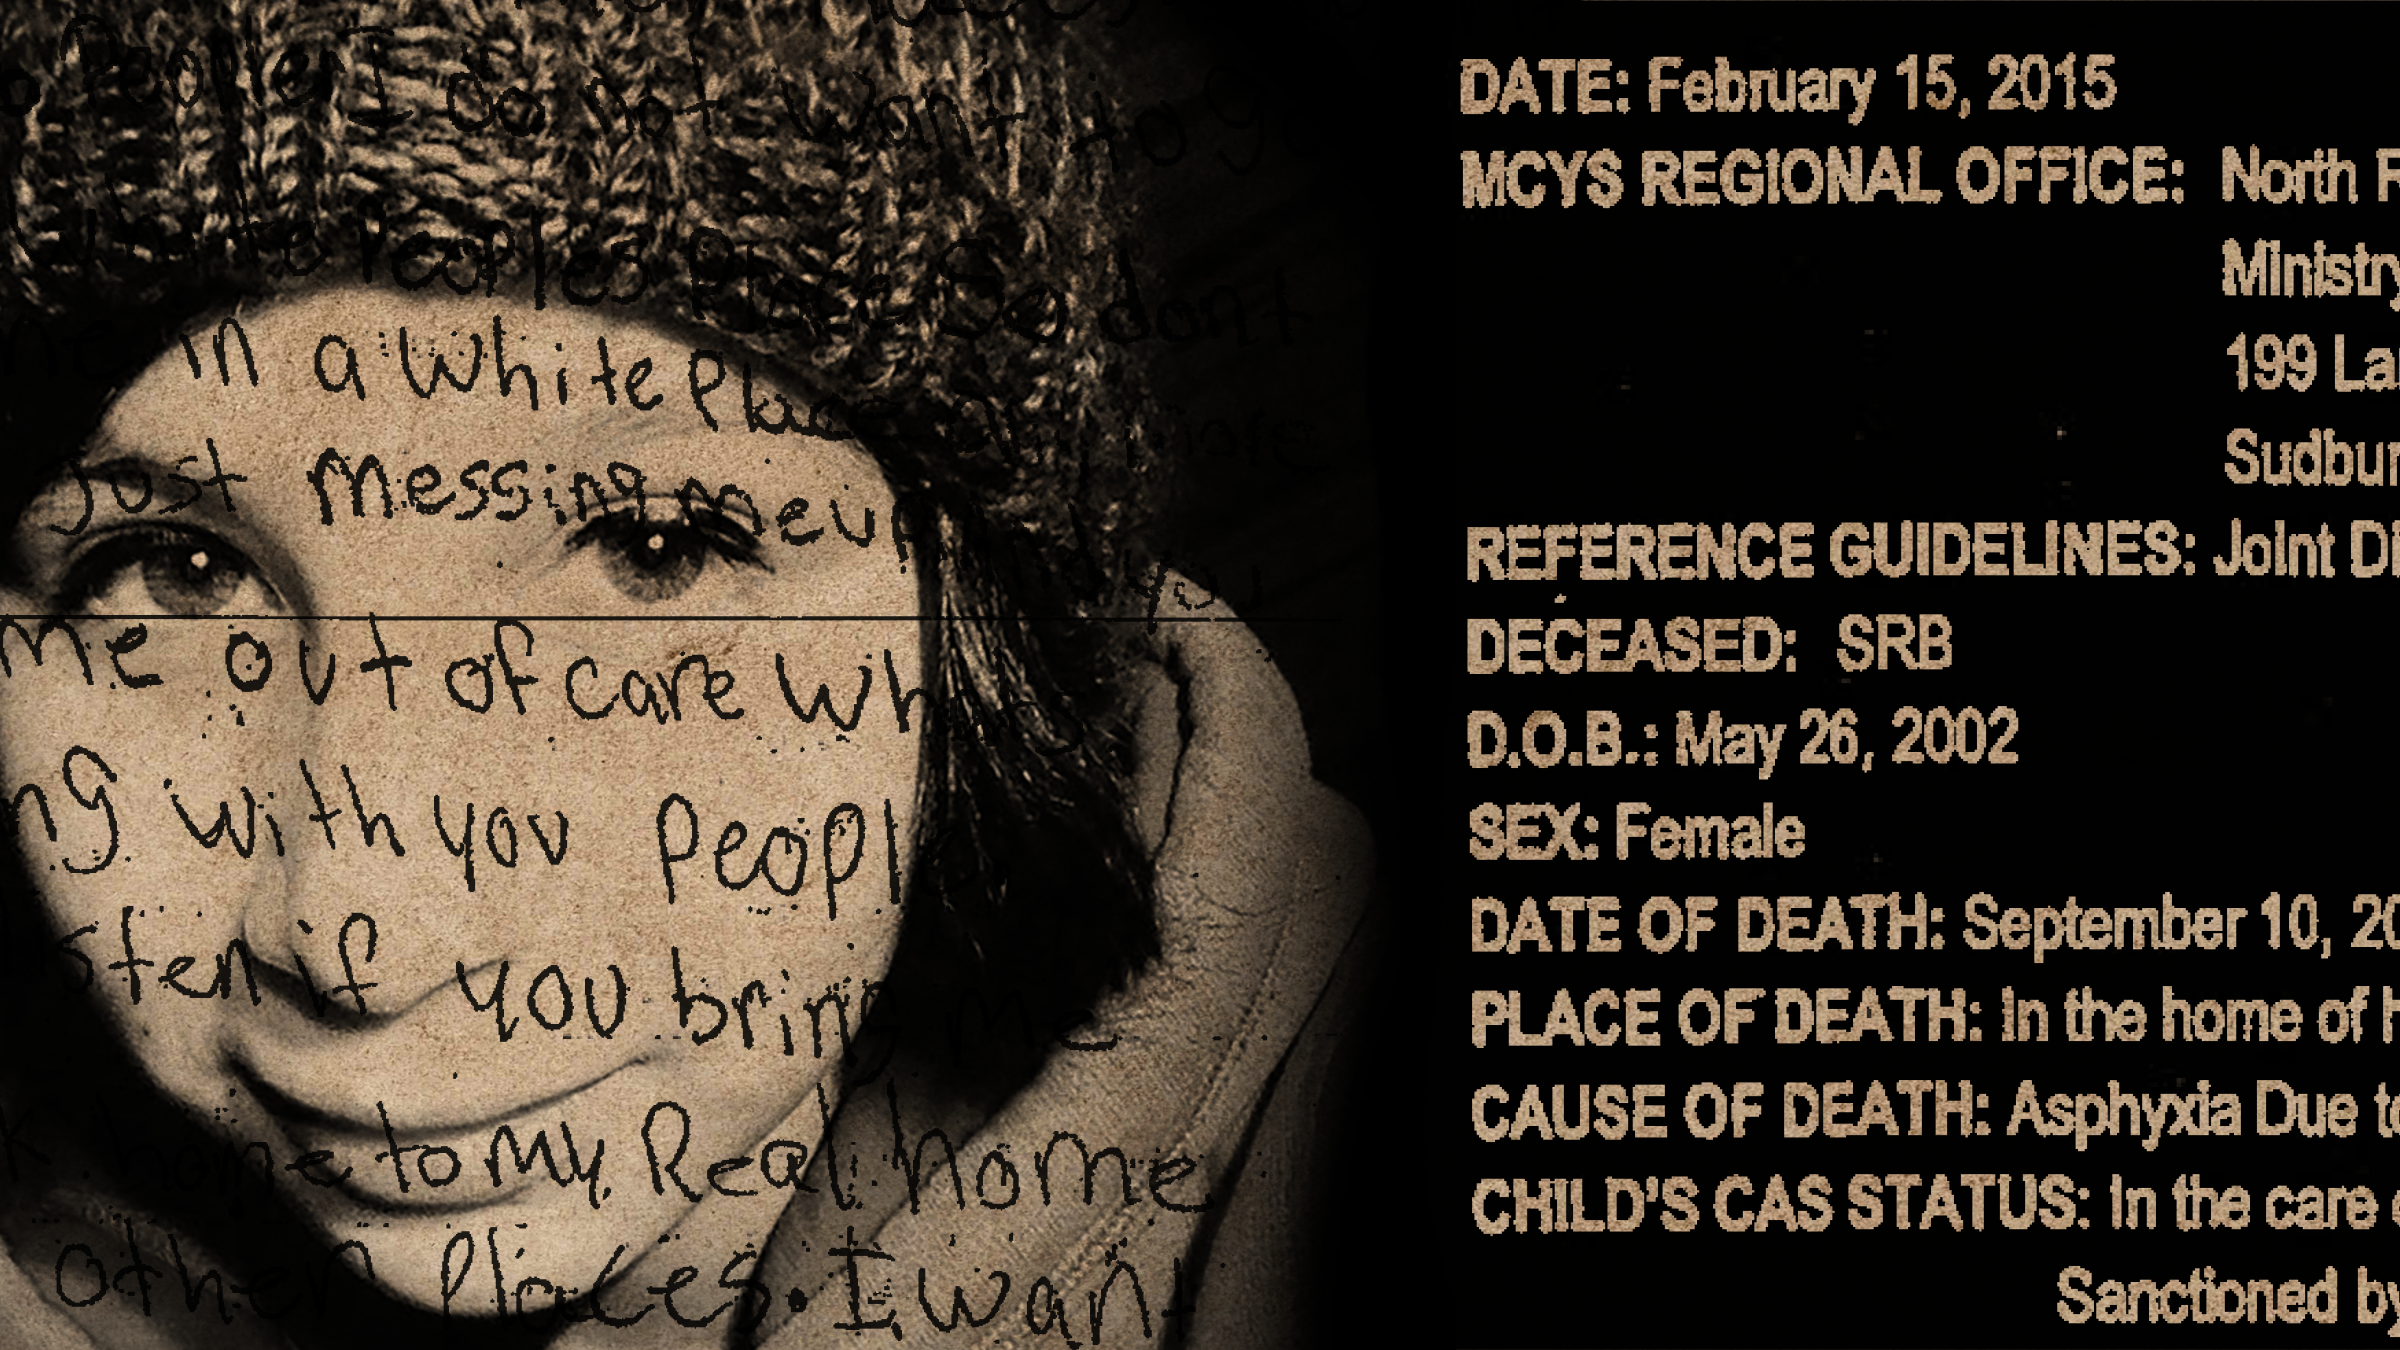 Composite image of a young girl's face and text